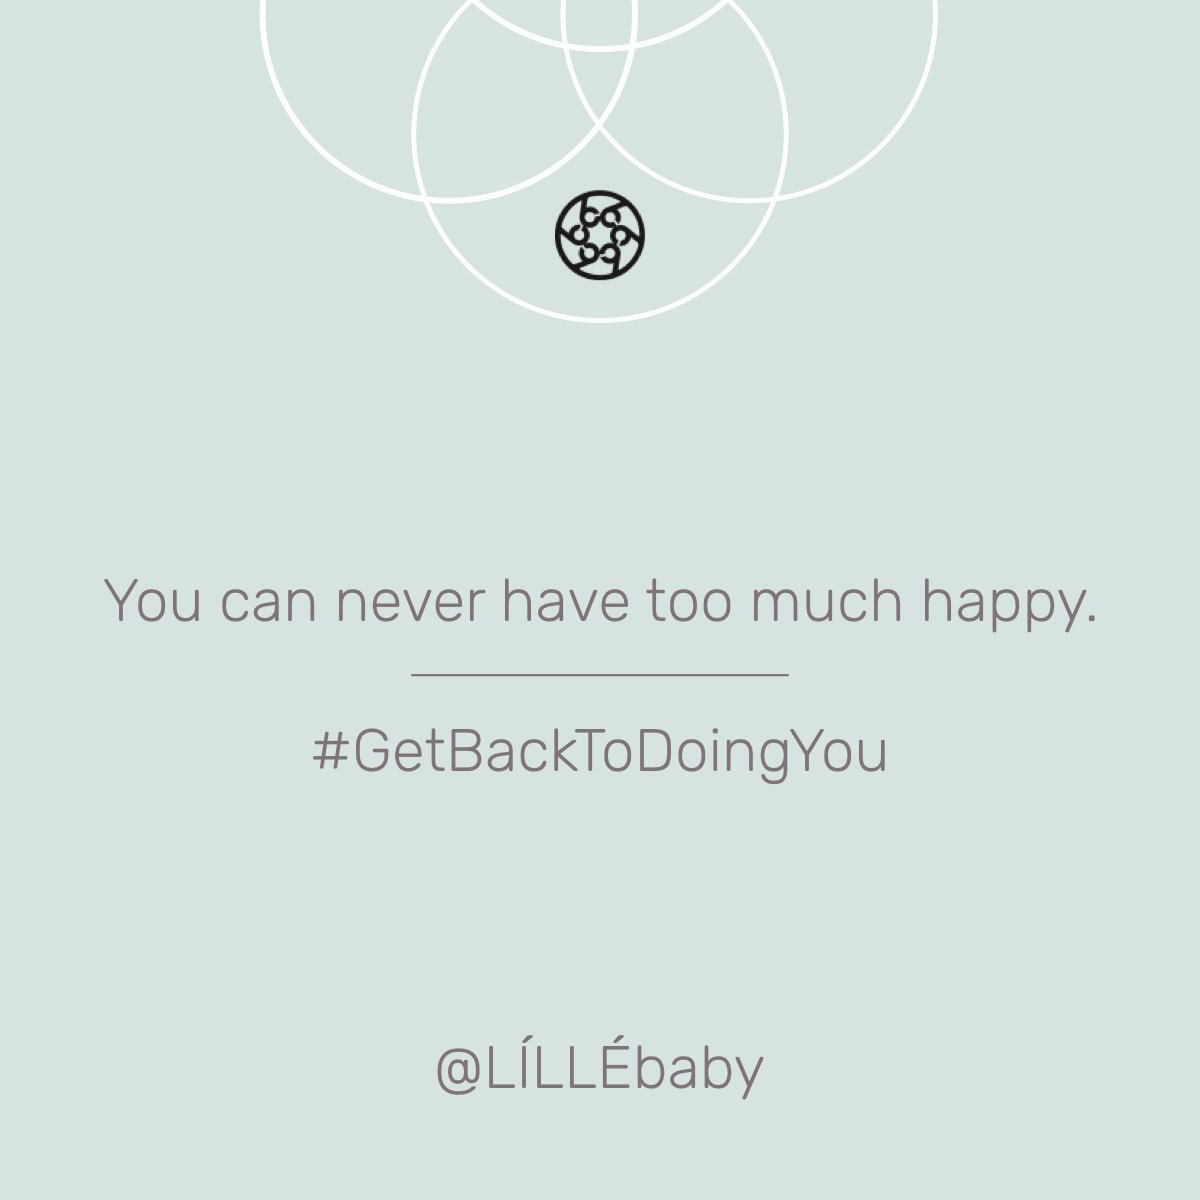 Introducing #GetBackToDoingYou – A Campaign For Parents by Parents